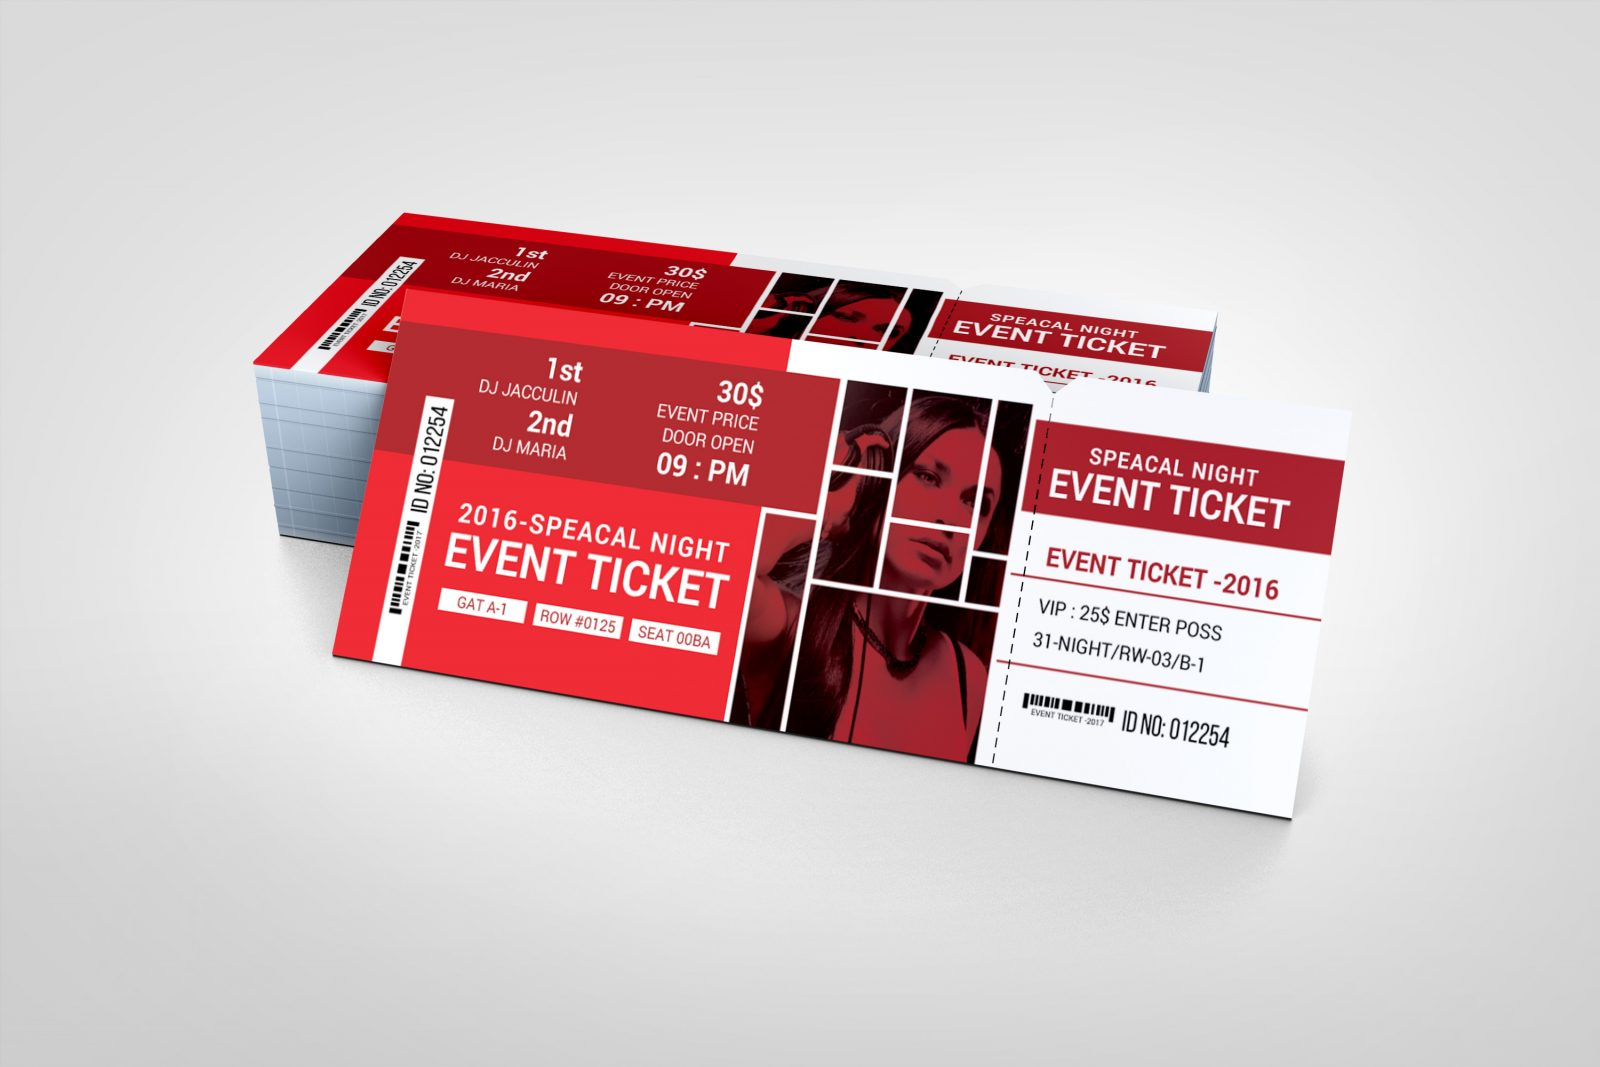 london event ticket design template 001972